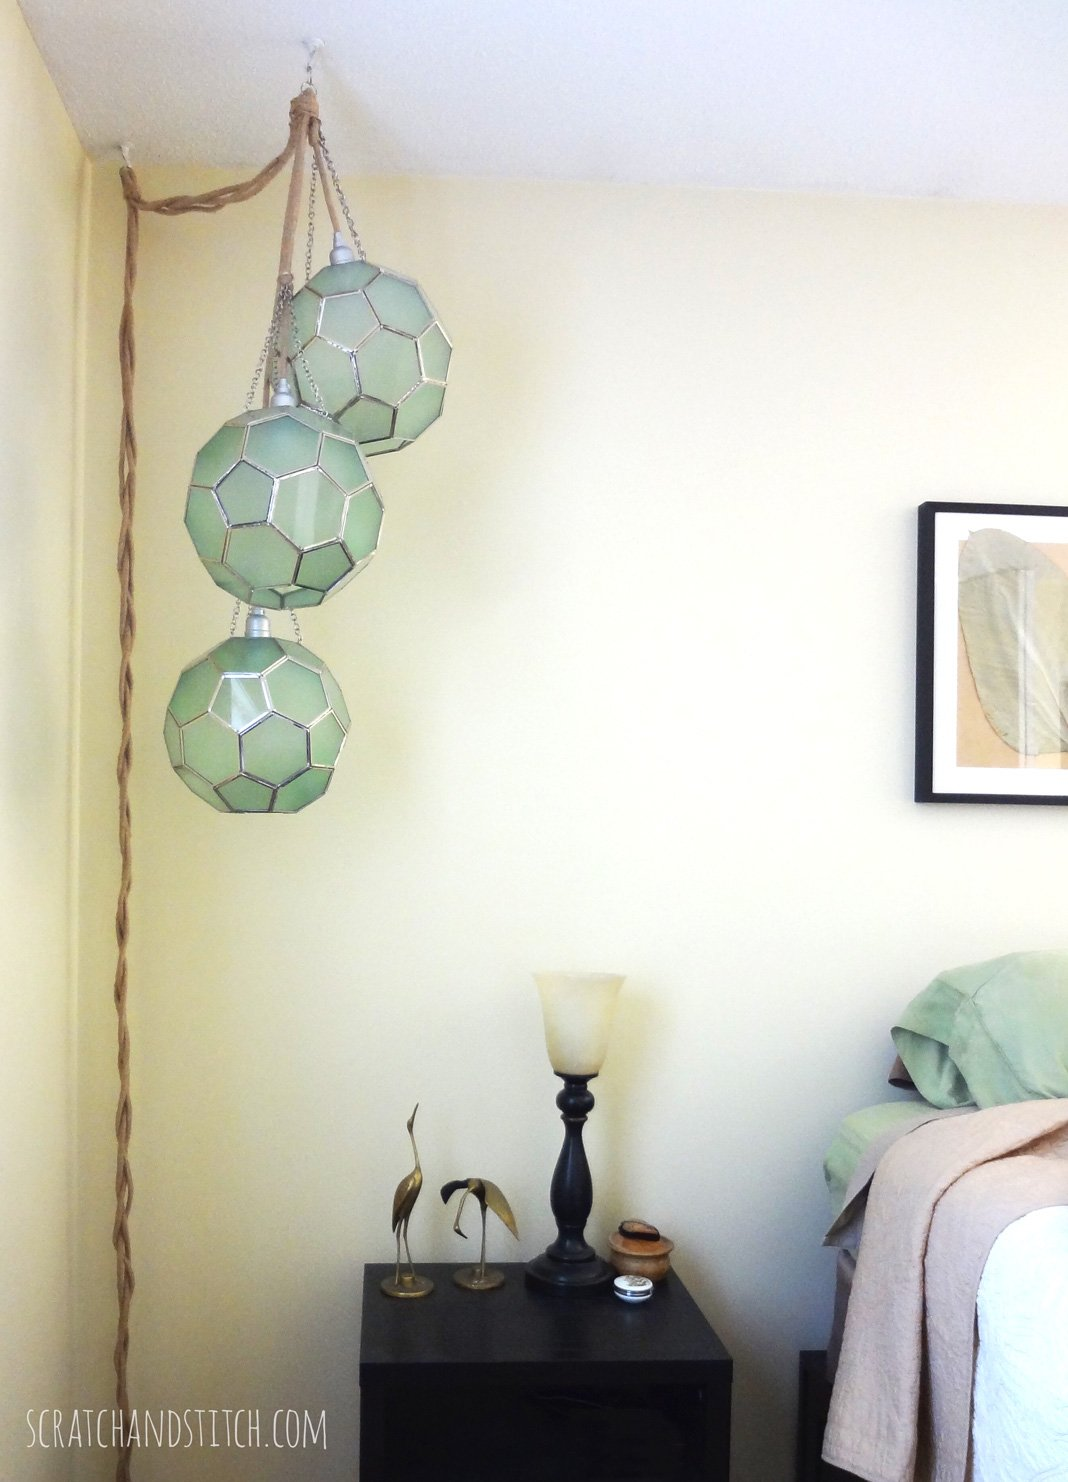 Triple Pendant Light DIY - scratchandstitch.com